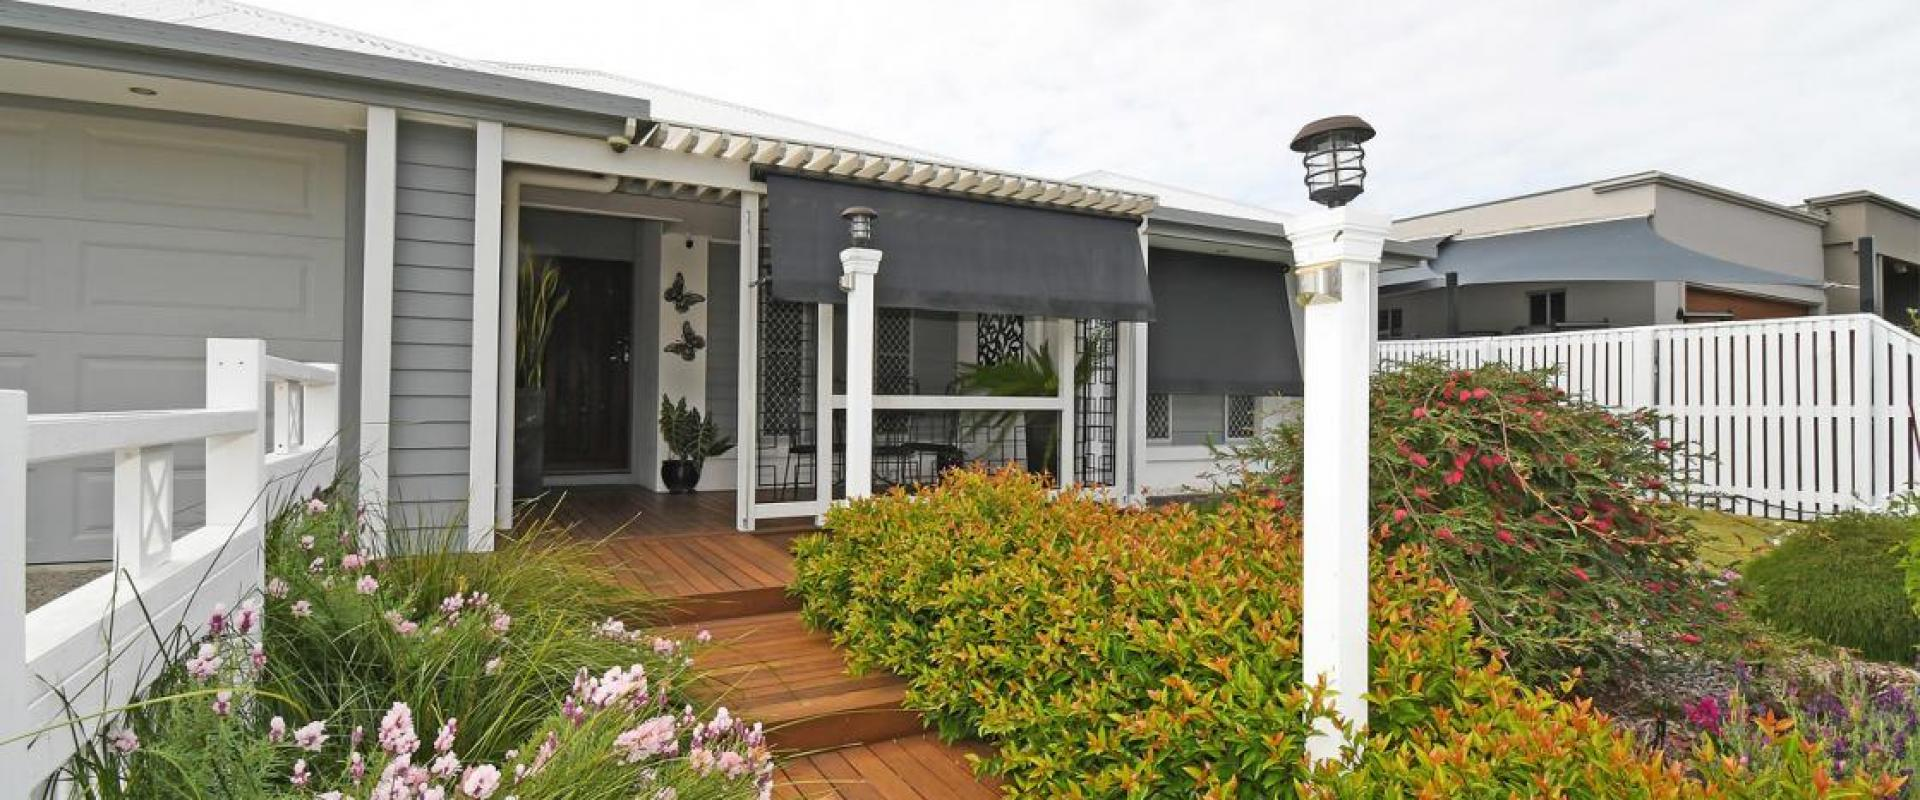 PERFECTION - A STUNNING BUILDERS HOME THAT OFFERS EVERYTHING YOU COULD DESIRE, LOCATION, SWIM POOL, CARAVAN & VEHICLE PORTS, 6 X 5 SHED, SOLAR, MEDIA.